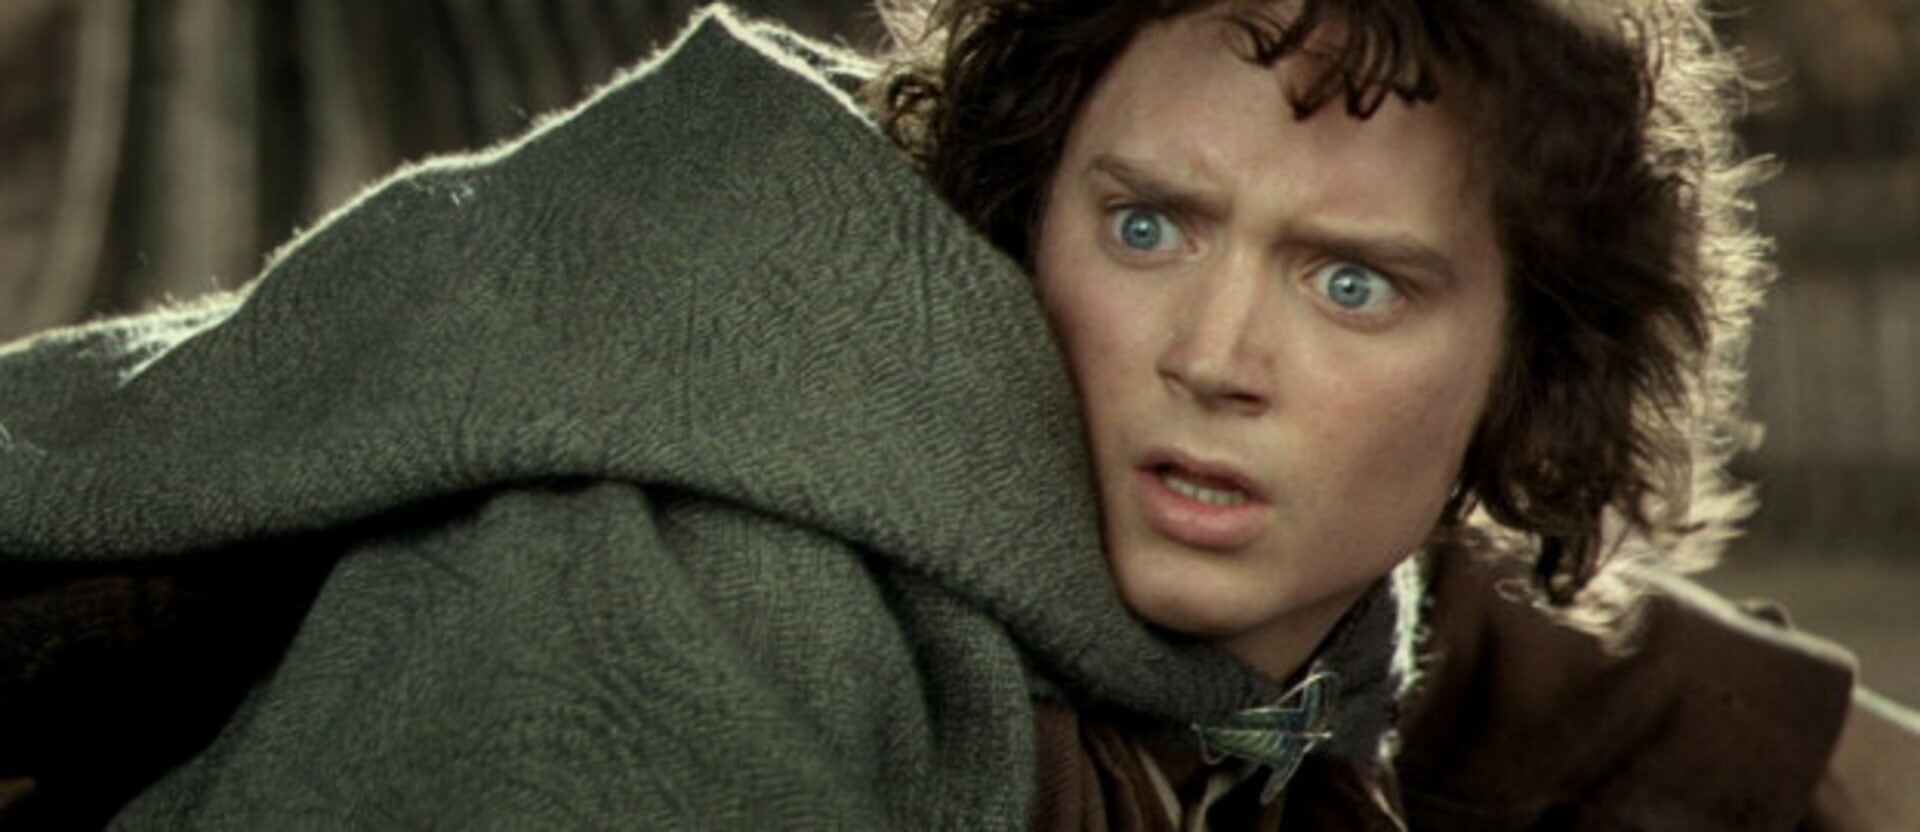 The Lord of the Rings: The Two Towers - Image 69